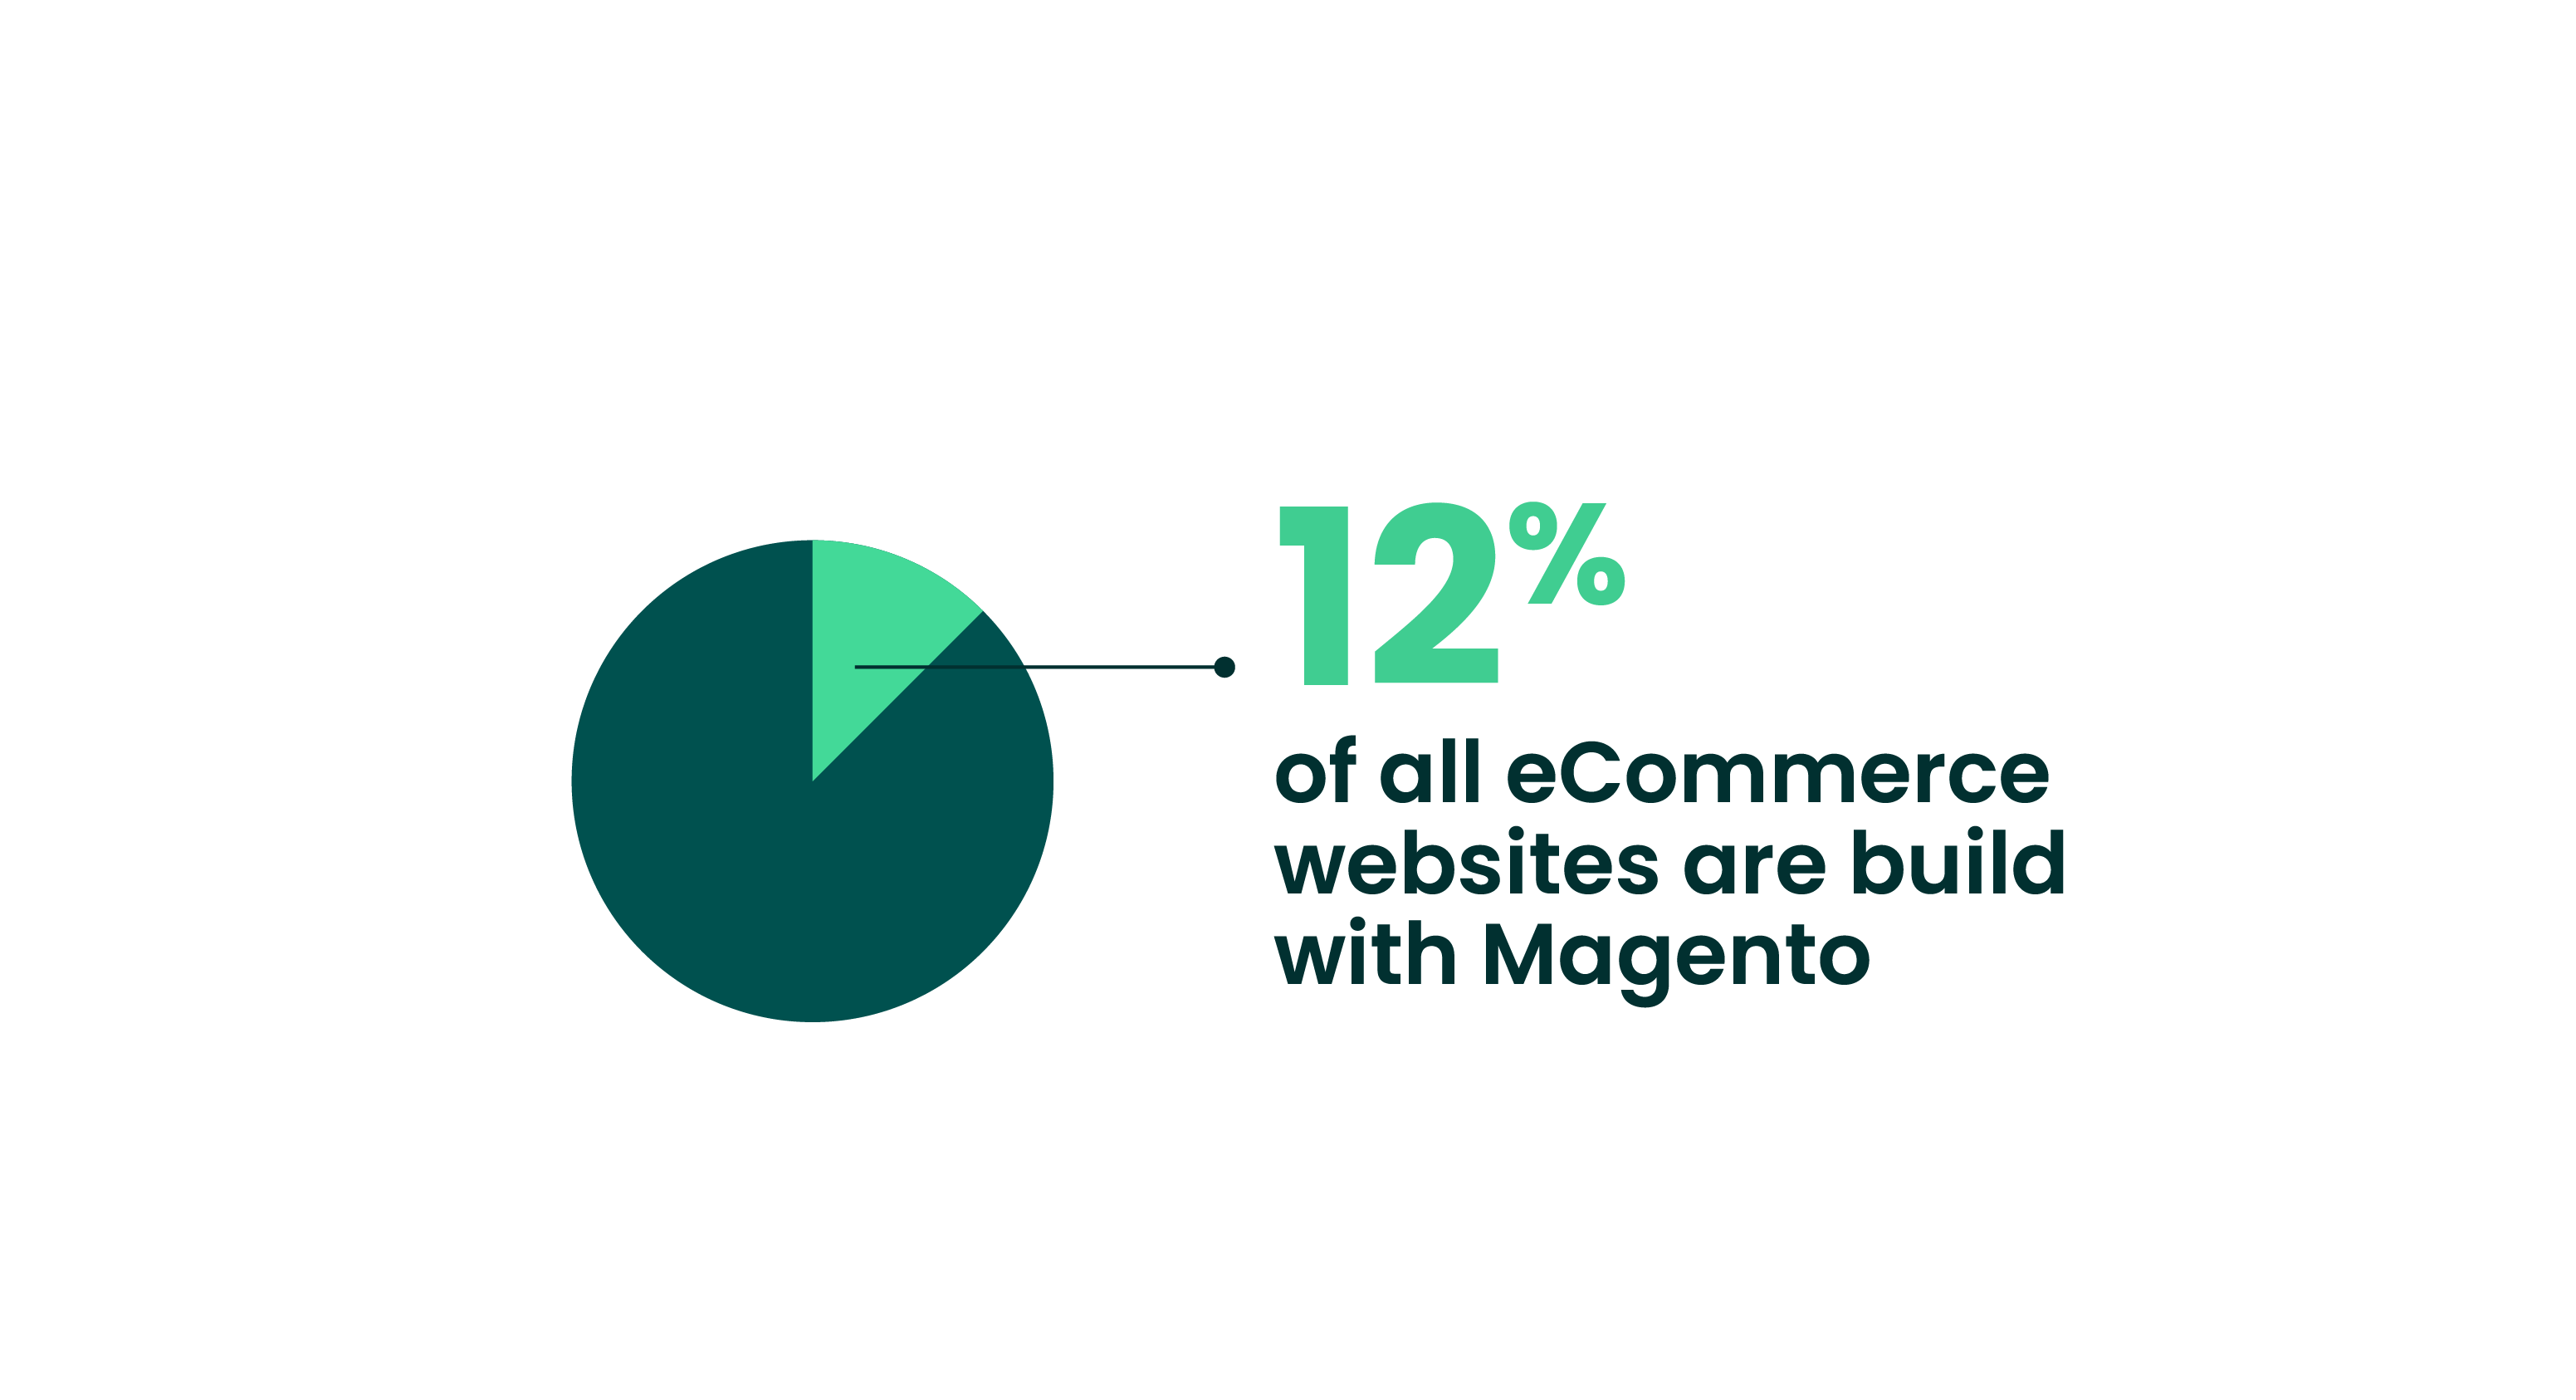 Percentage of Magento websites in eCommerce